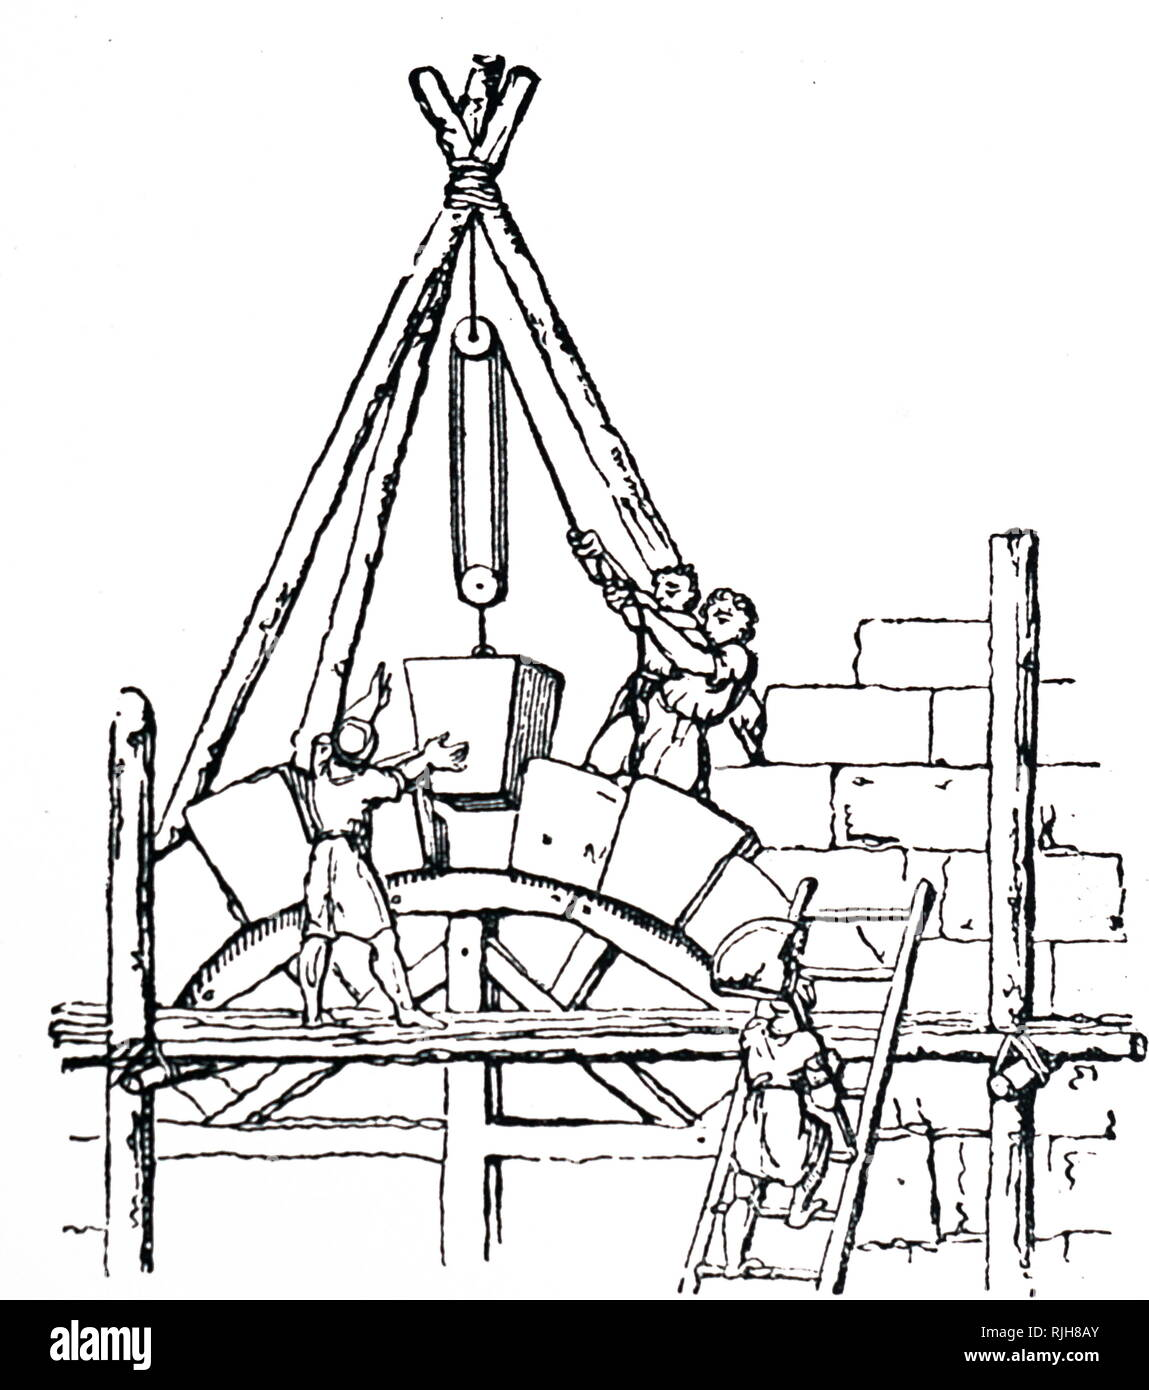 Physics Pulley Stock Photos & Physics Pulley Stock Images - Alamy